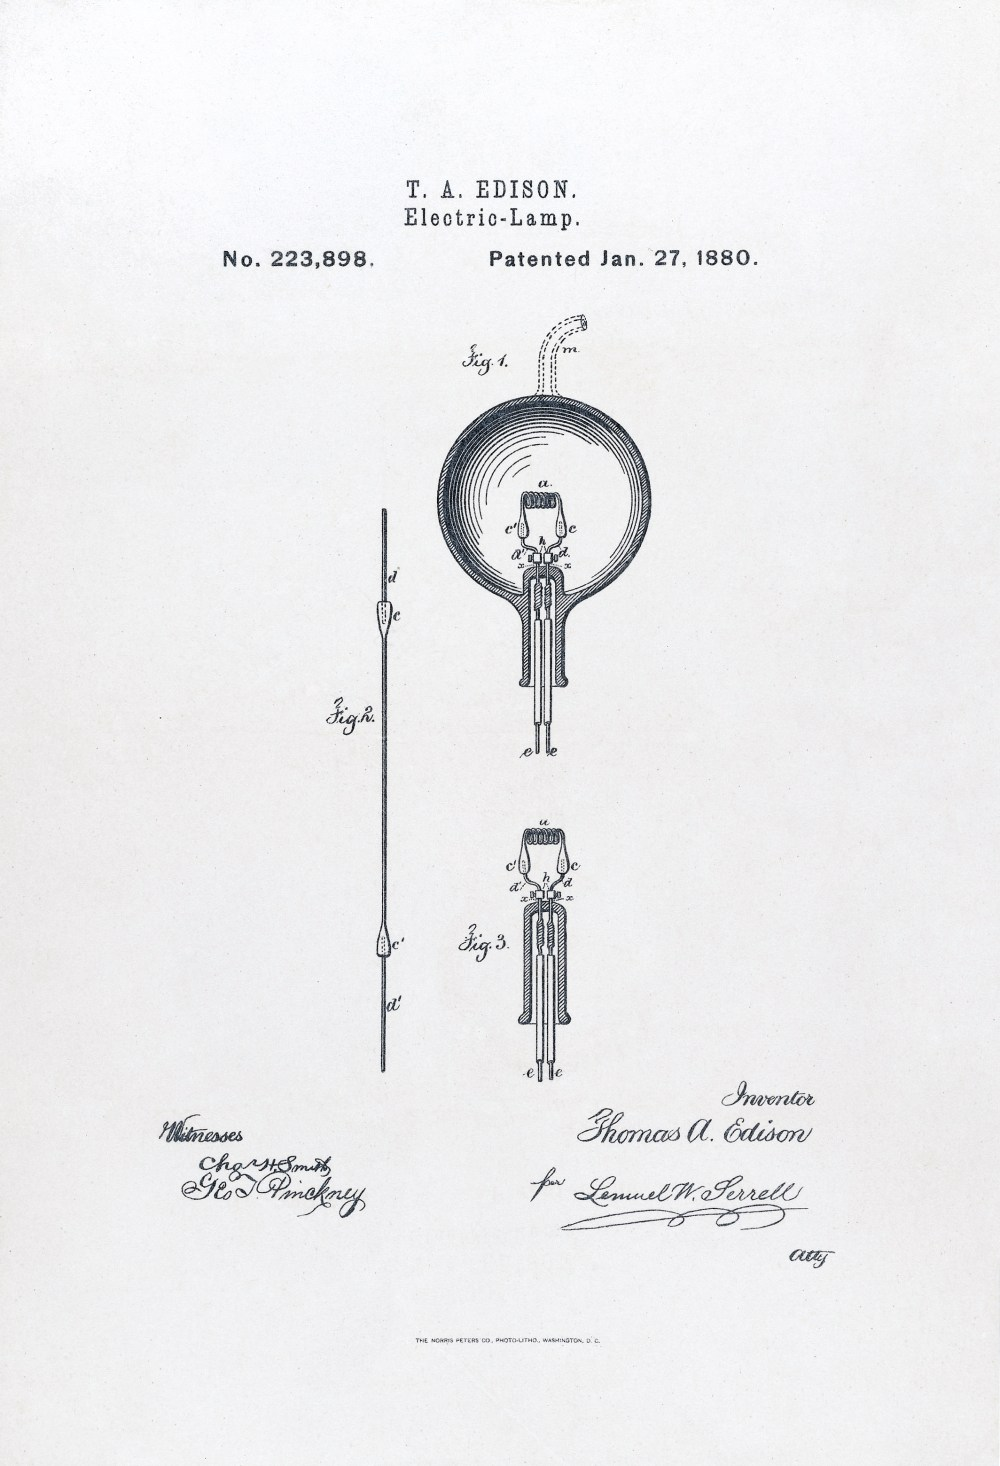 medium resolution of u s patent 223898 electric lamp issued january 27 1880